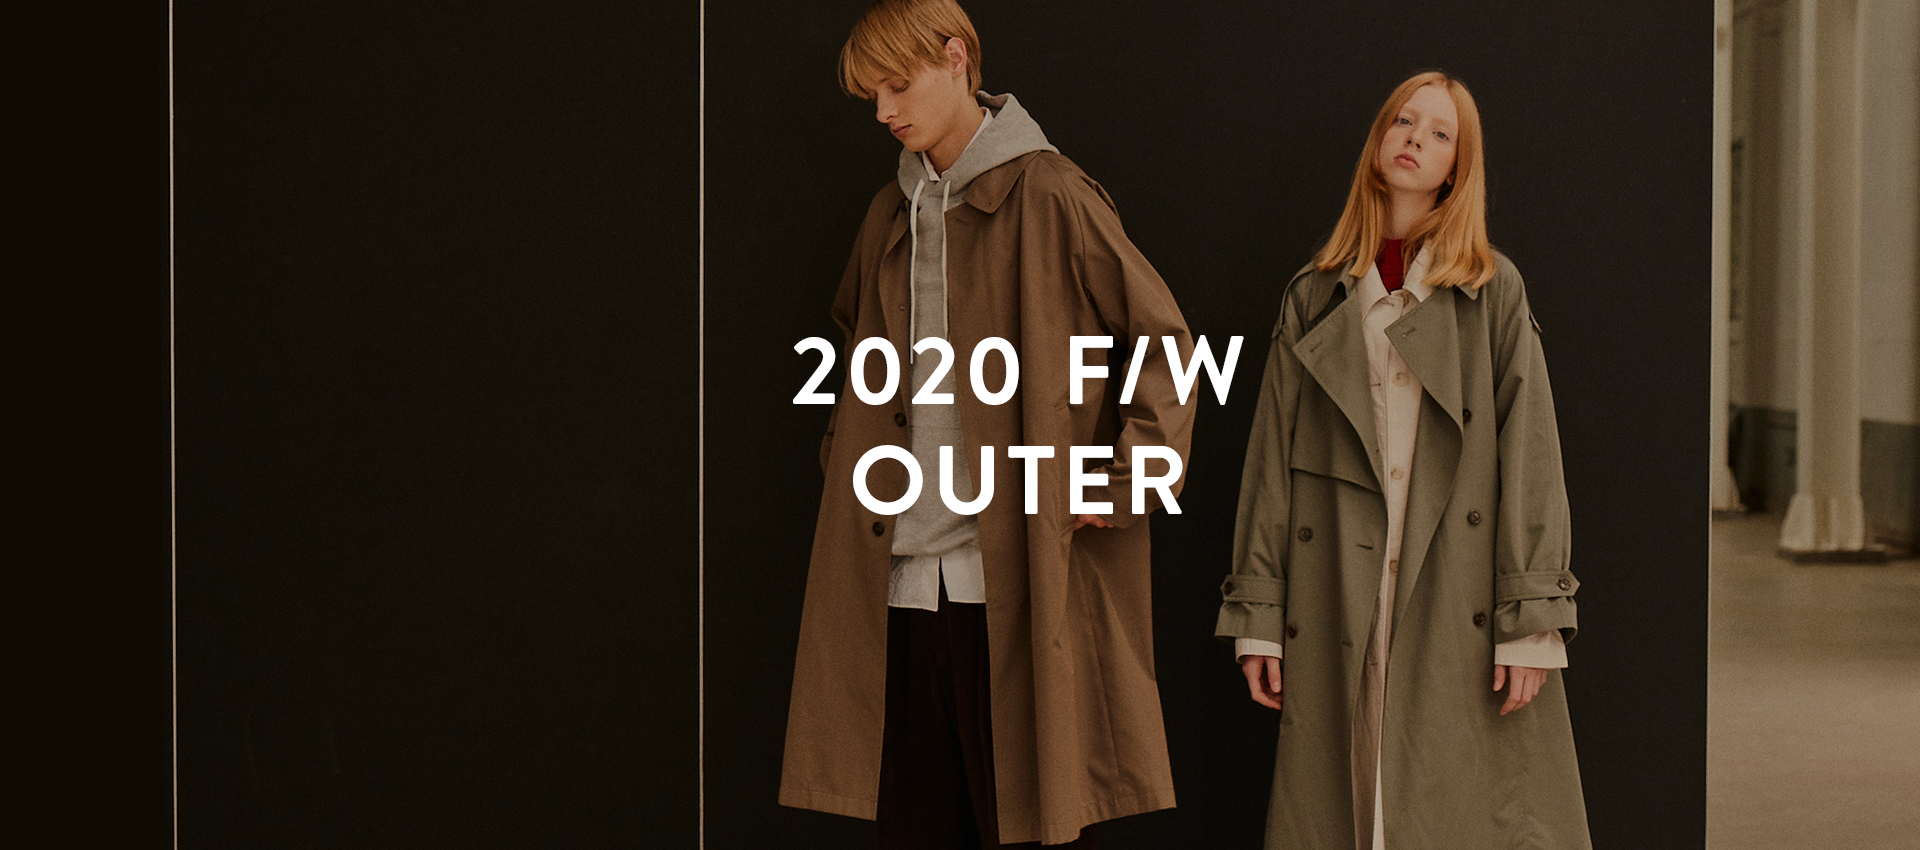 2020 FW OUTER